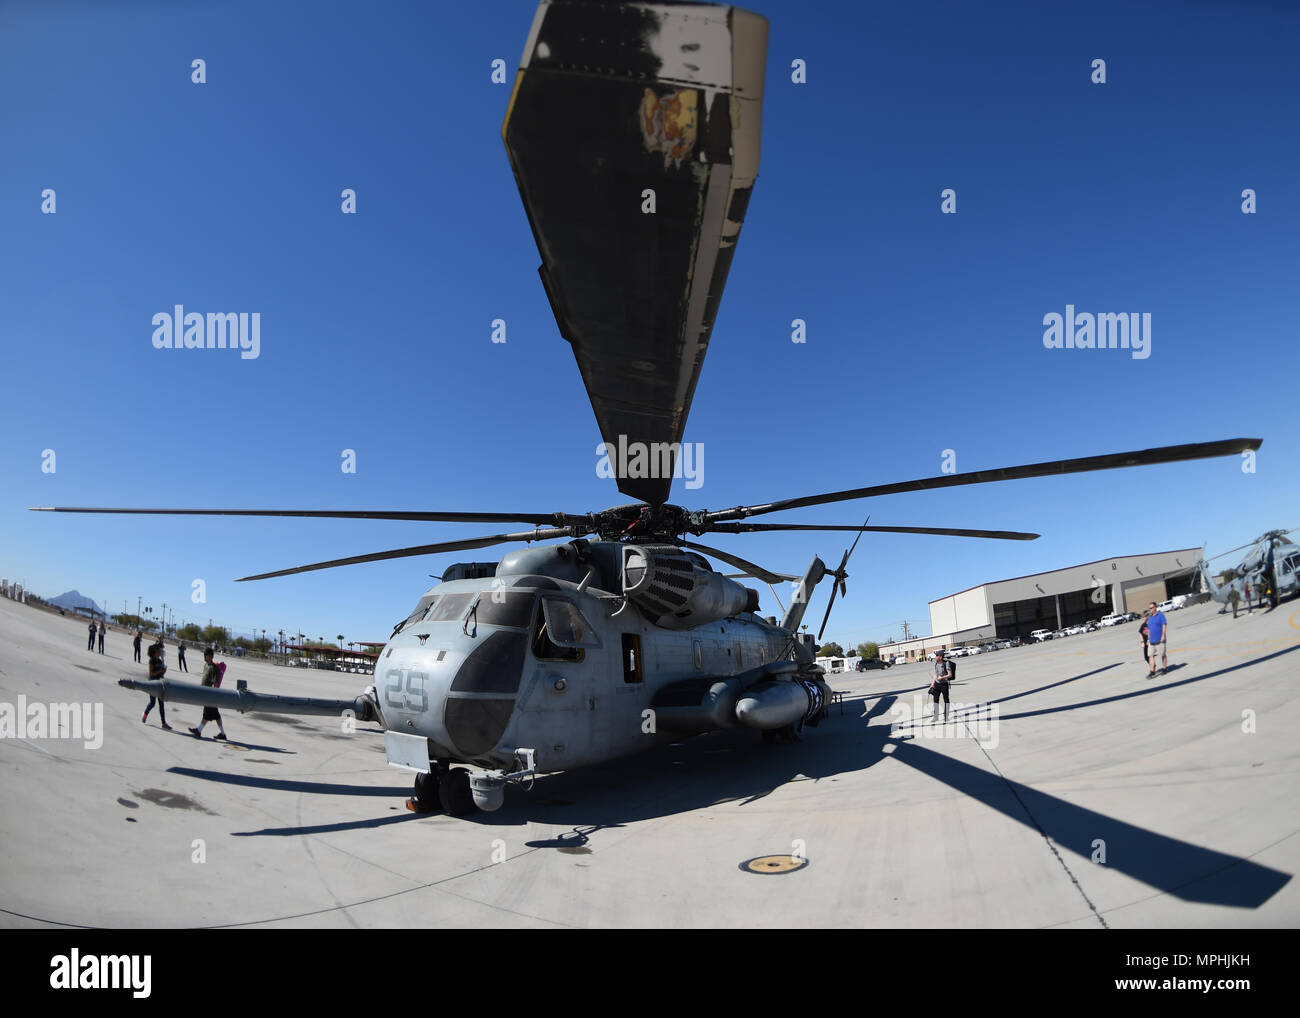 A U.S. Marine Corps CH-53E Super Stallion sits on the flightline at Naval Air Facility El Centro, California, March 11, 2017, during the 2017 NAF El Centro Airshow.  The CH-53 is the heaviest and largest helicopter used in the U.S. military, capable of carrying 16 tons of cargo or enough Marines for combat or humanitarian missions. (U.S. Air Force photo by Airman 1st Class Kirby Turbak/Released) Stock Photo